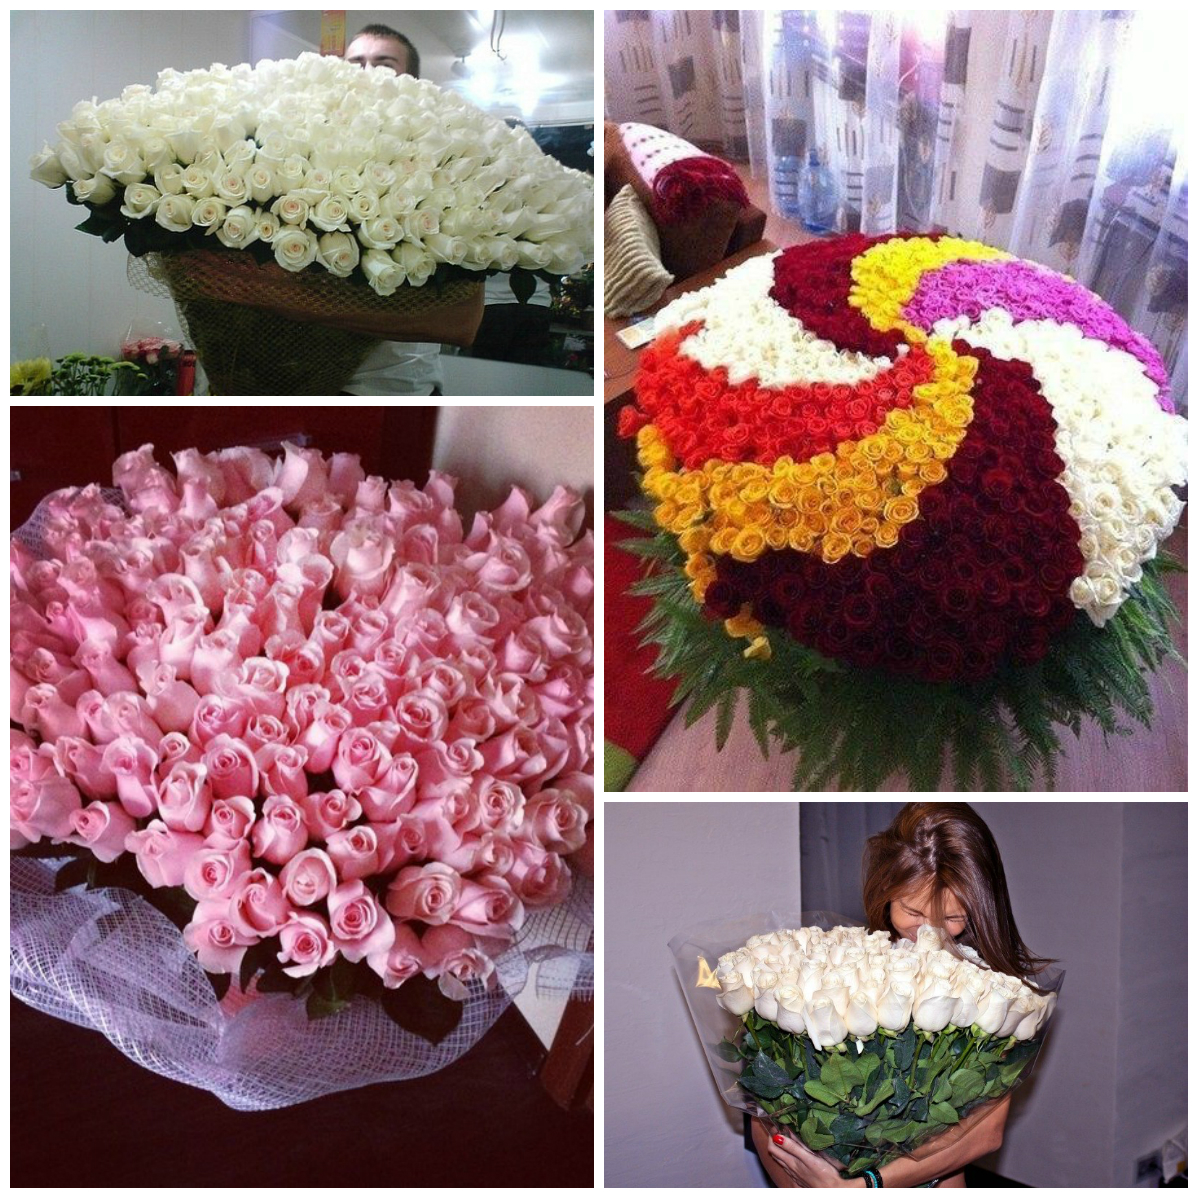 Huge bouquet of flowers